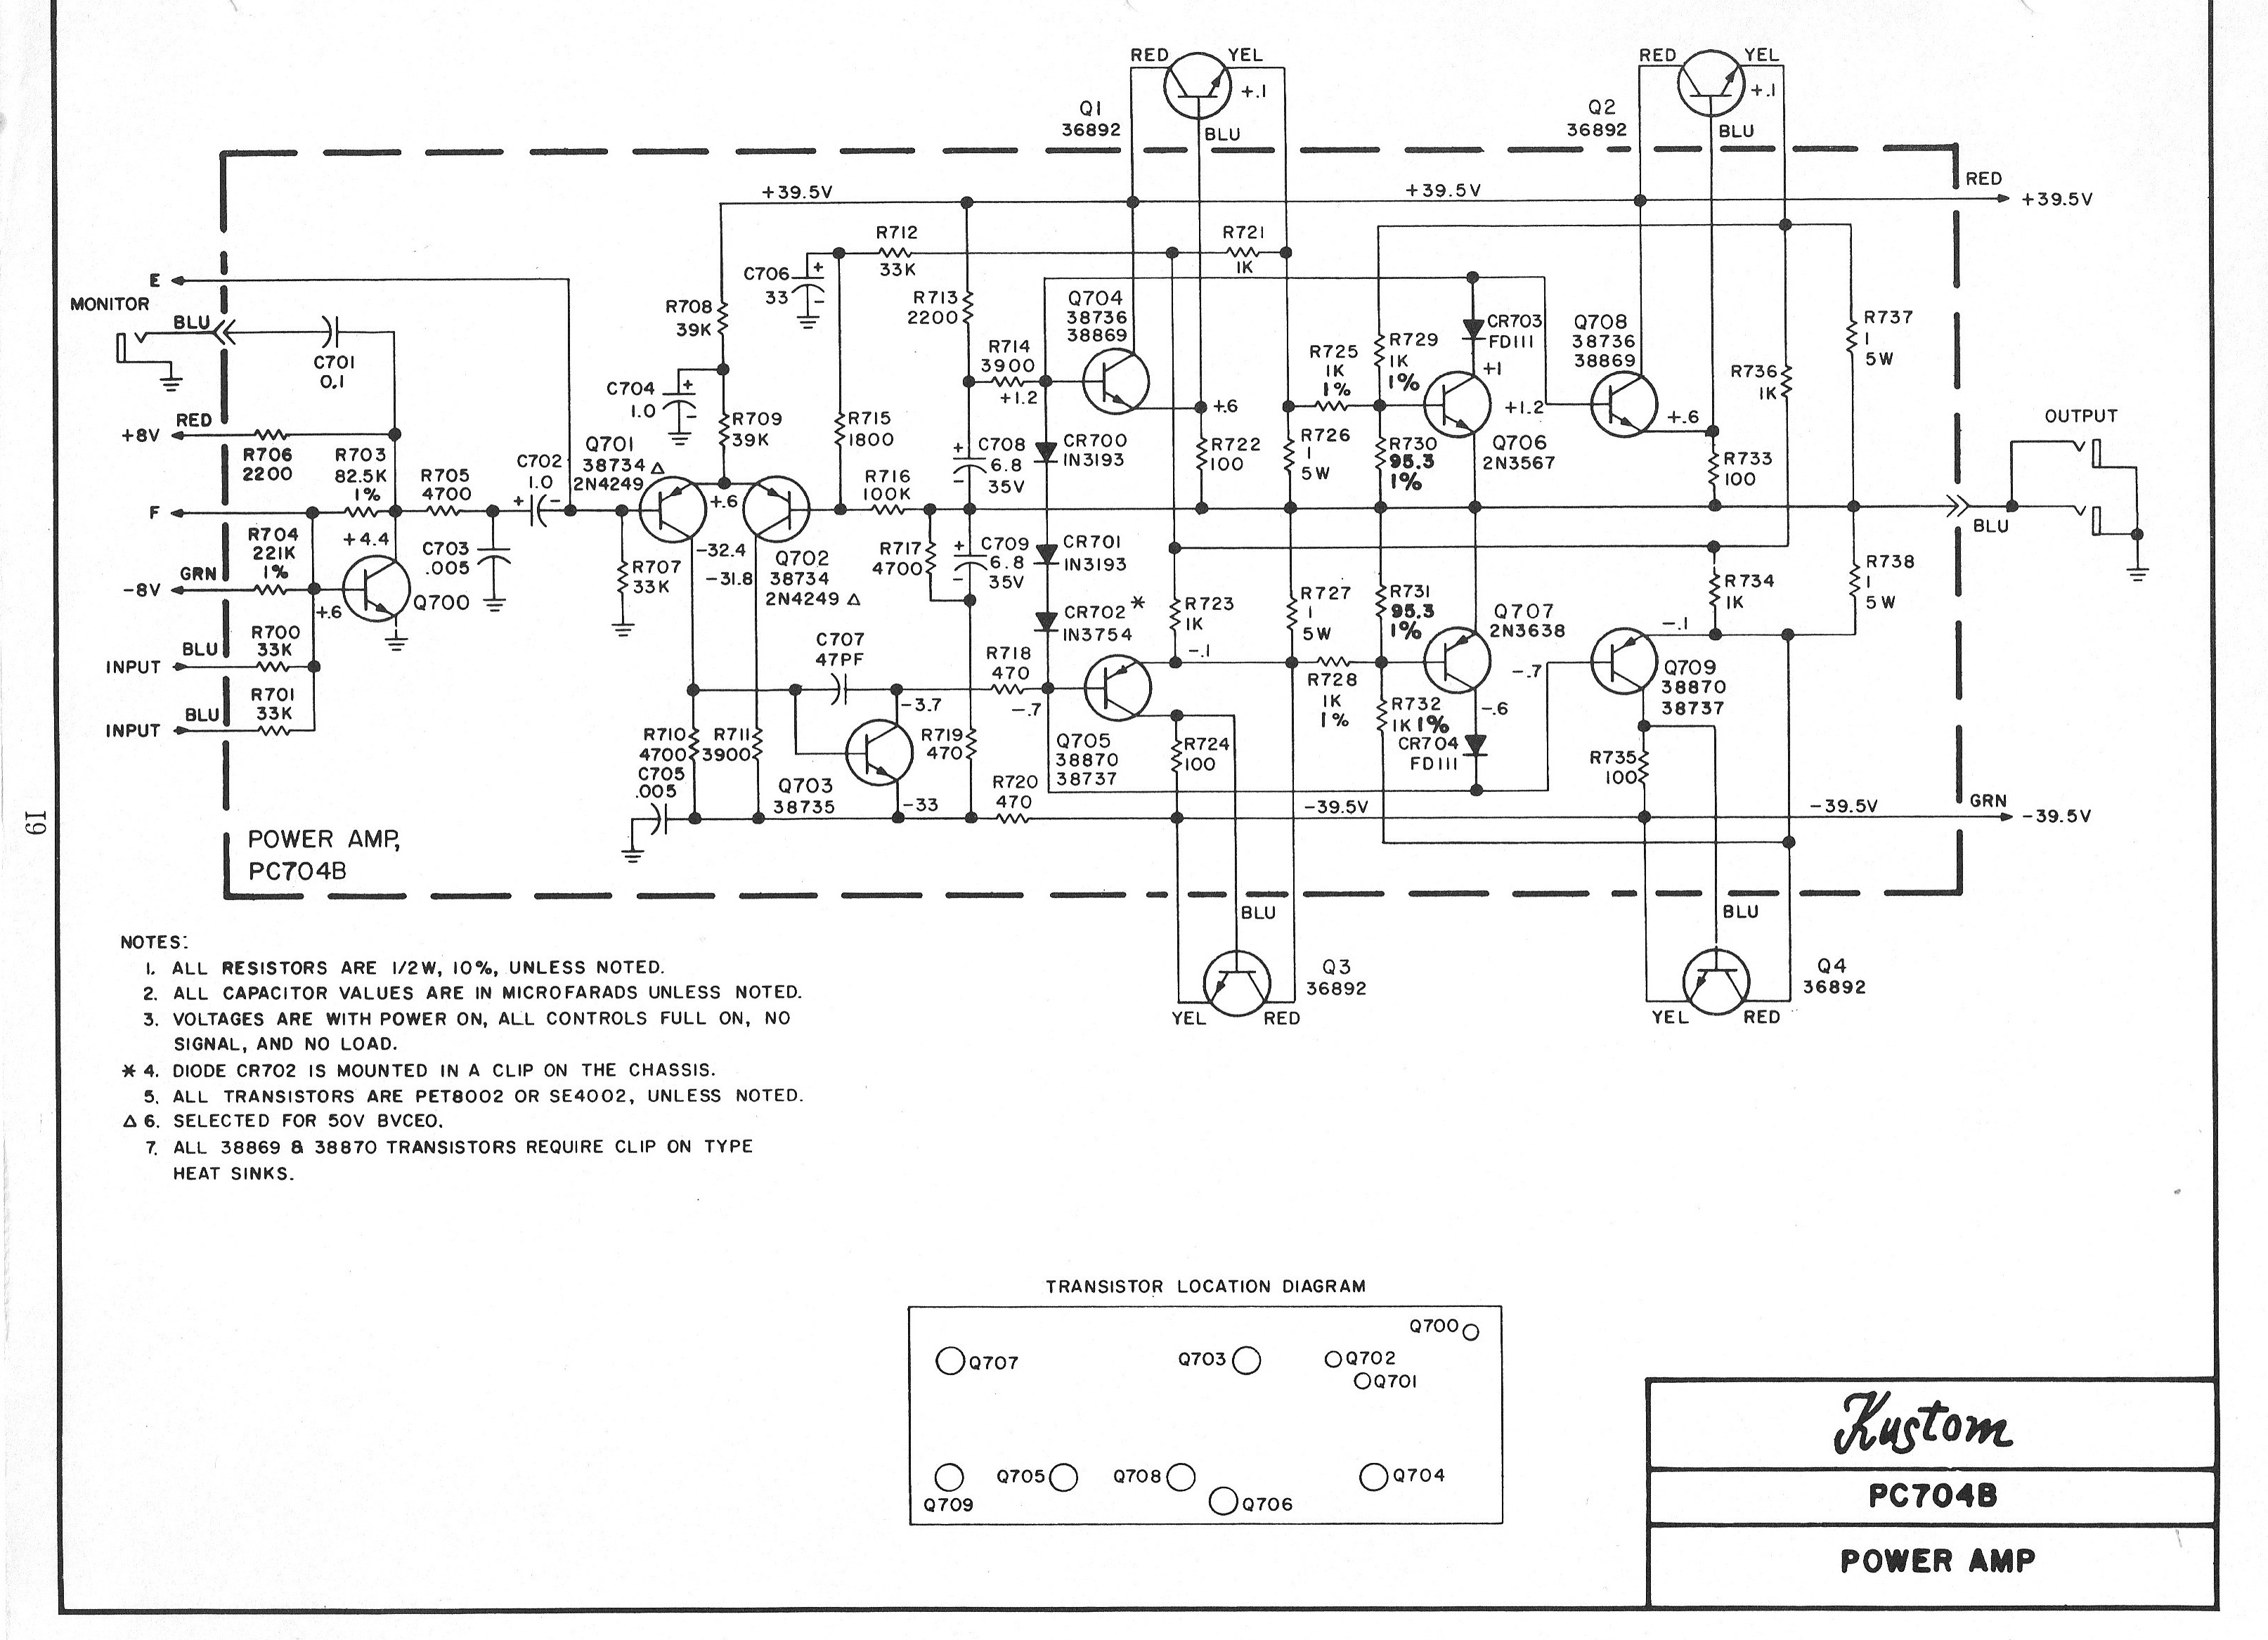 [DIAGRAM_34OR]  Kustom Schematics - Tube amp Schematics | Kustom Defender Schematic |  | EL34 World